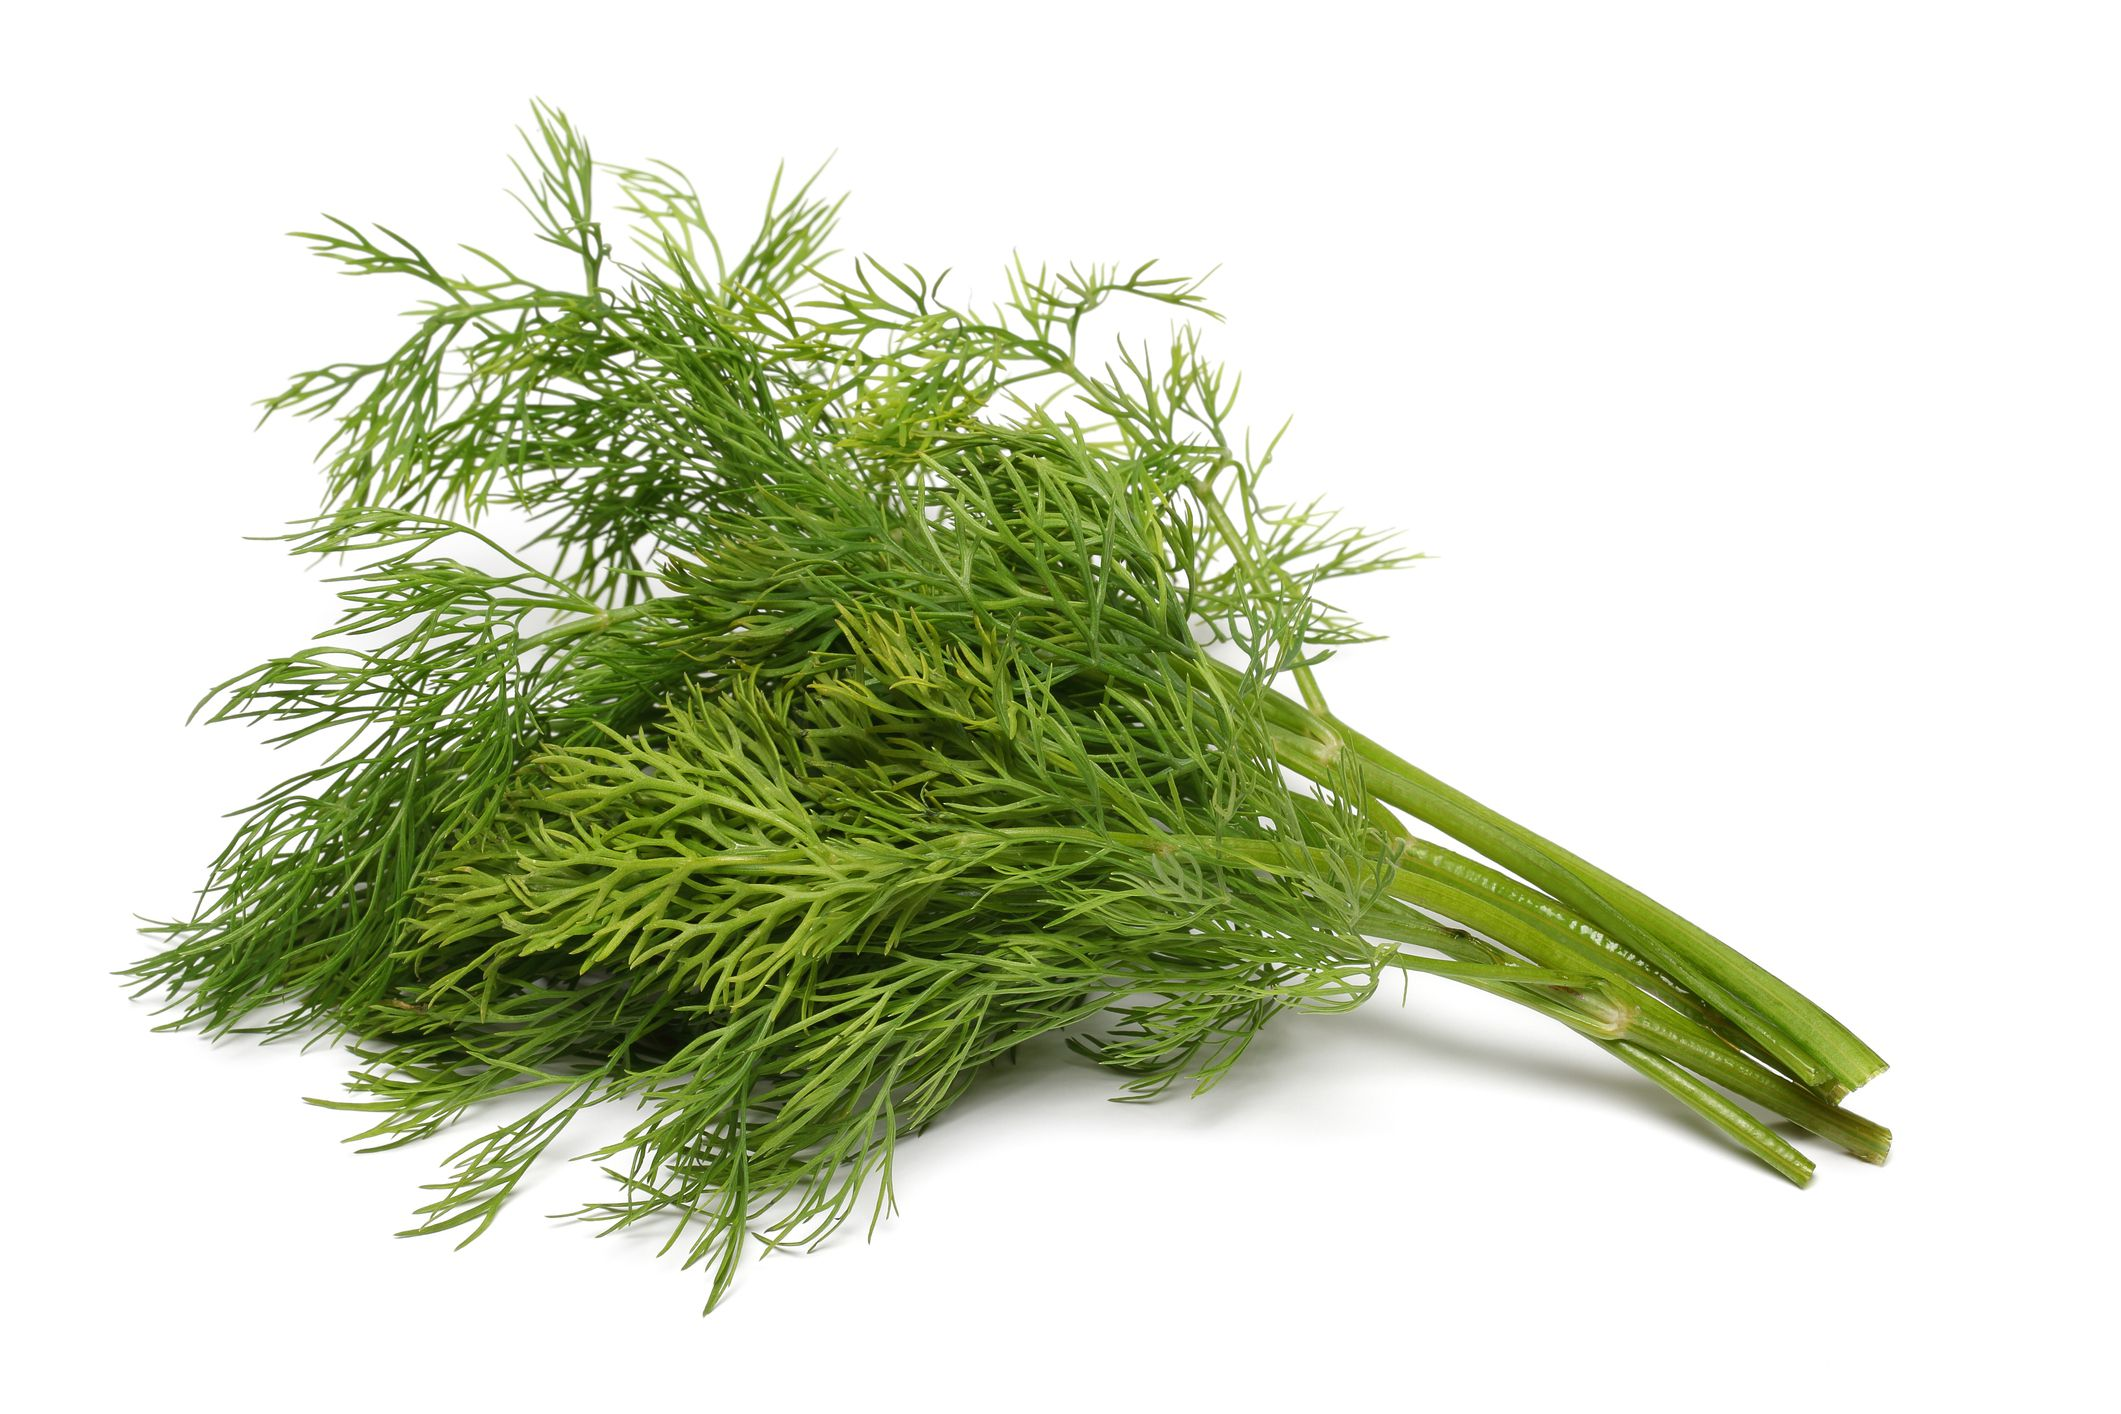 Bathroom Ideas For Kids How To Store Dill Weed And Seeds